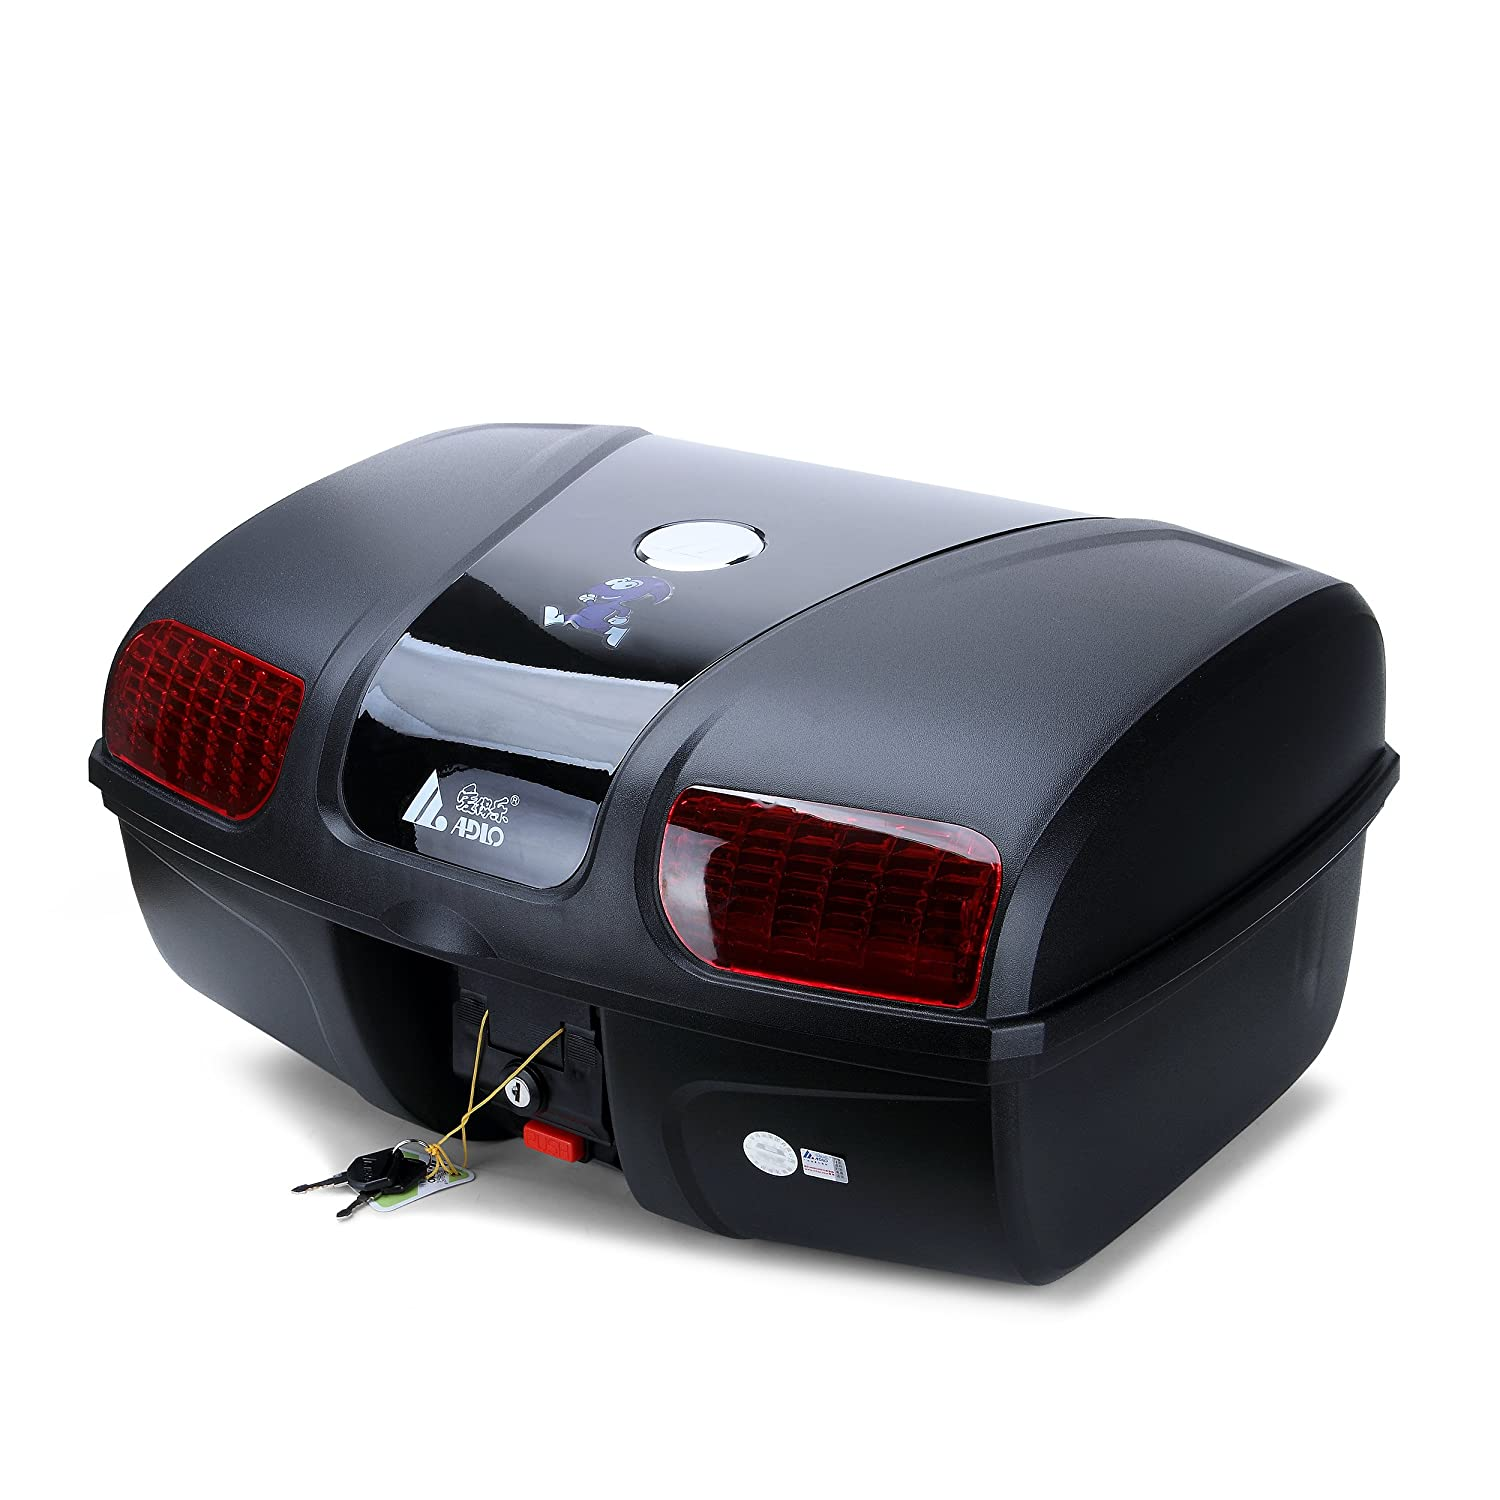 Black AUTOINBOX Universal Motorcycle Rear Top Box Tail Trunk Luggage Case,47 Litre Hard Case with Mounting Hardware